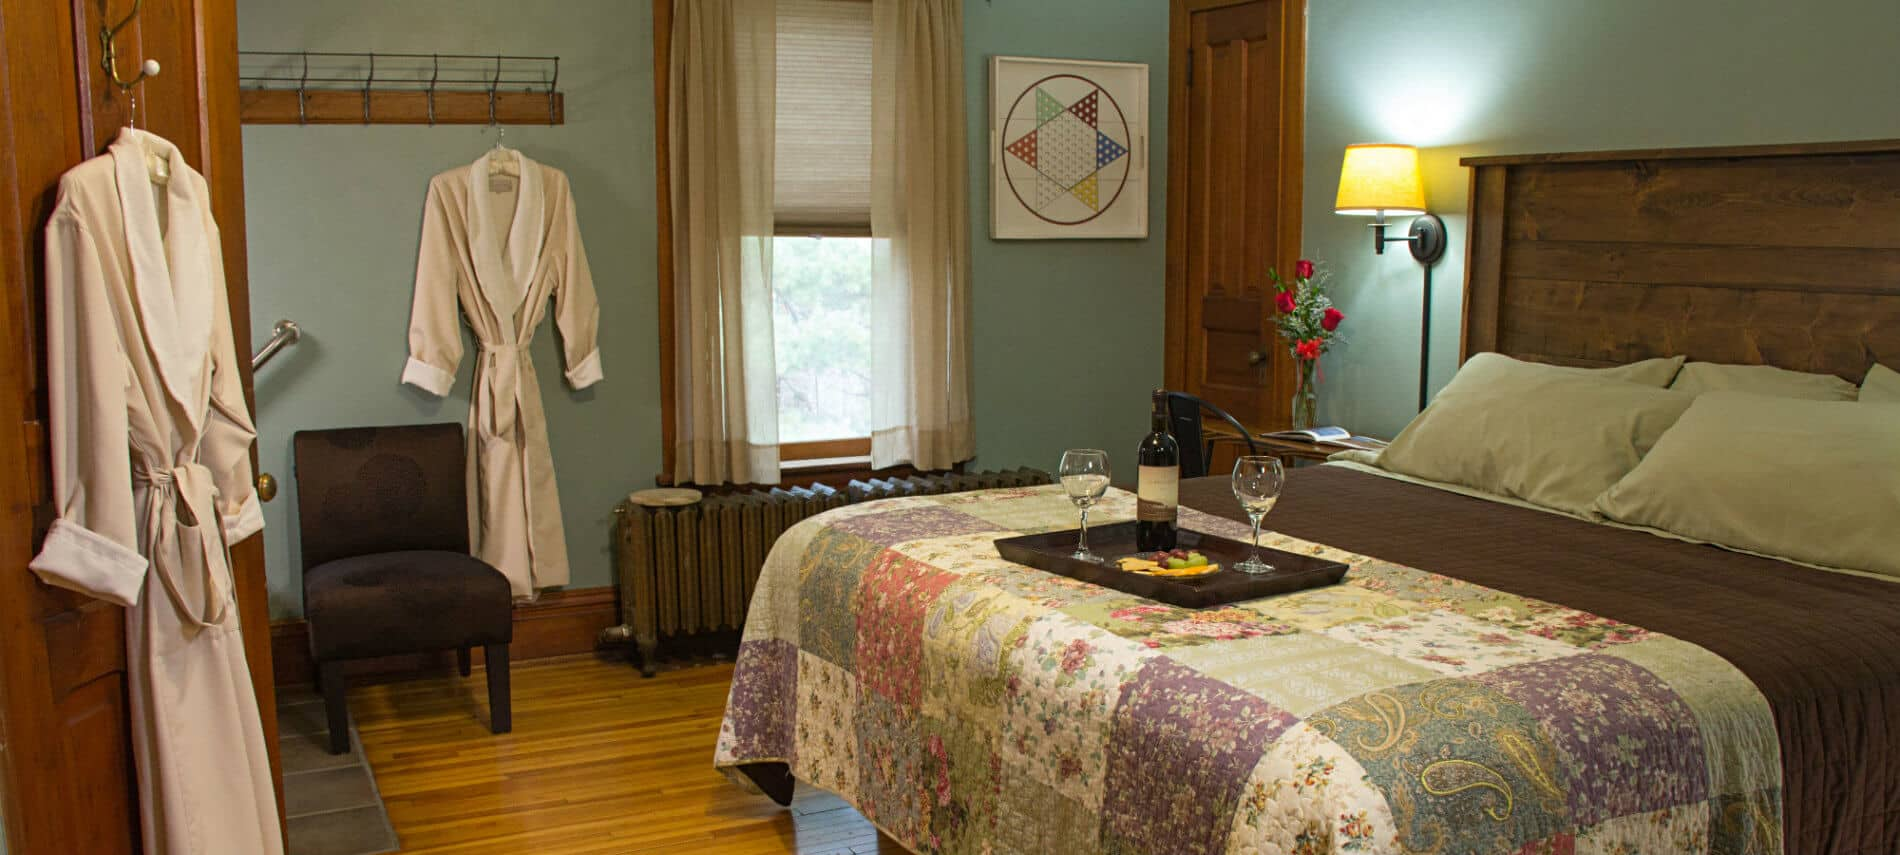 Blue green guest room, wood floors, quilt covered bed with wood headboard and tray of grapes and wine